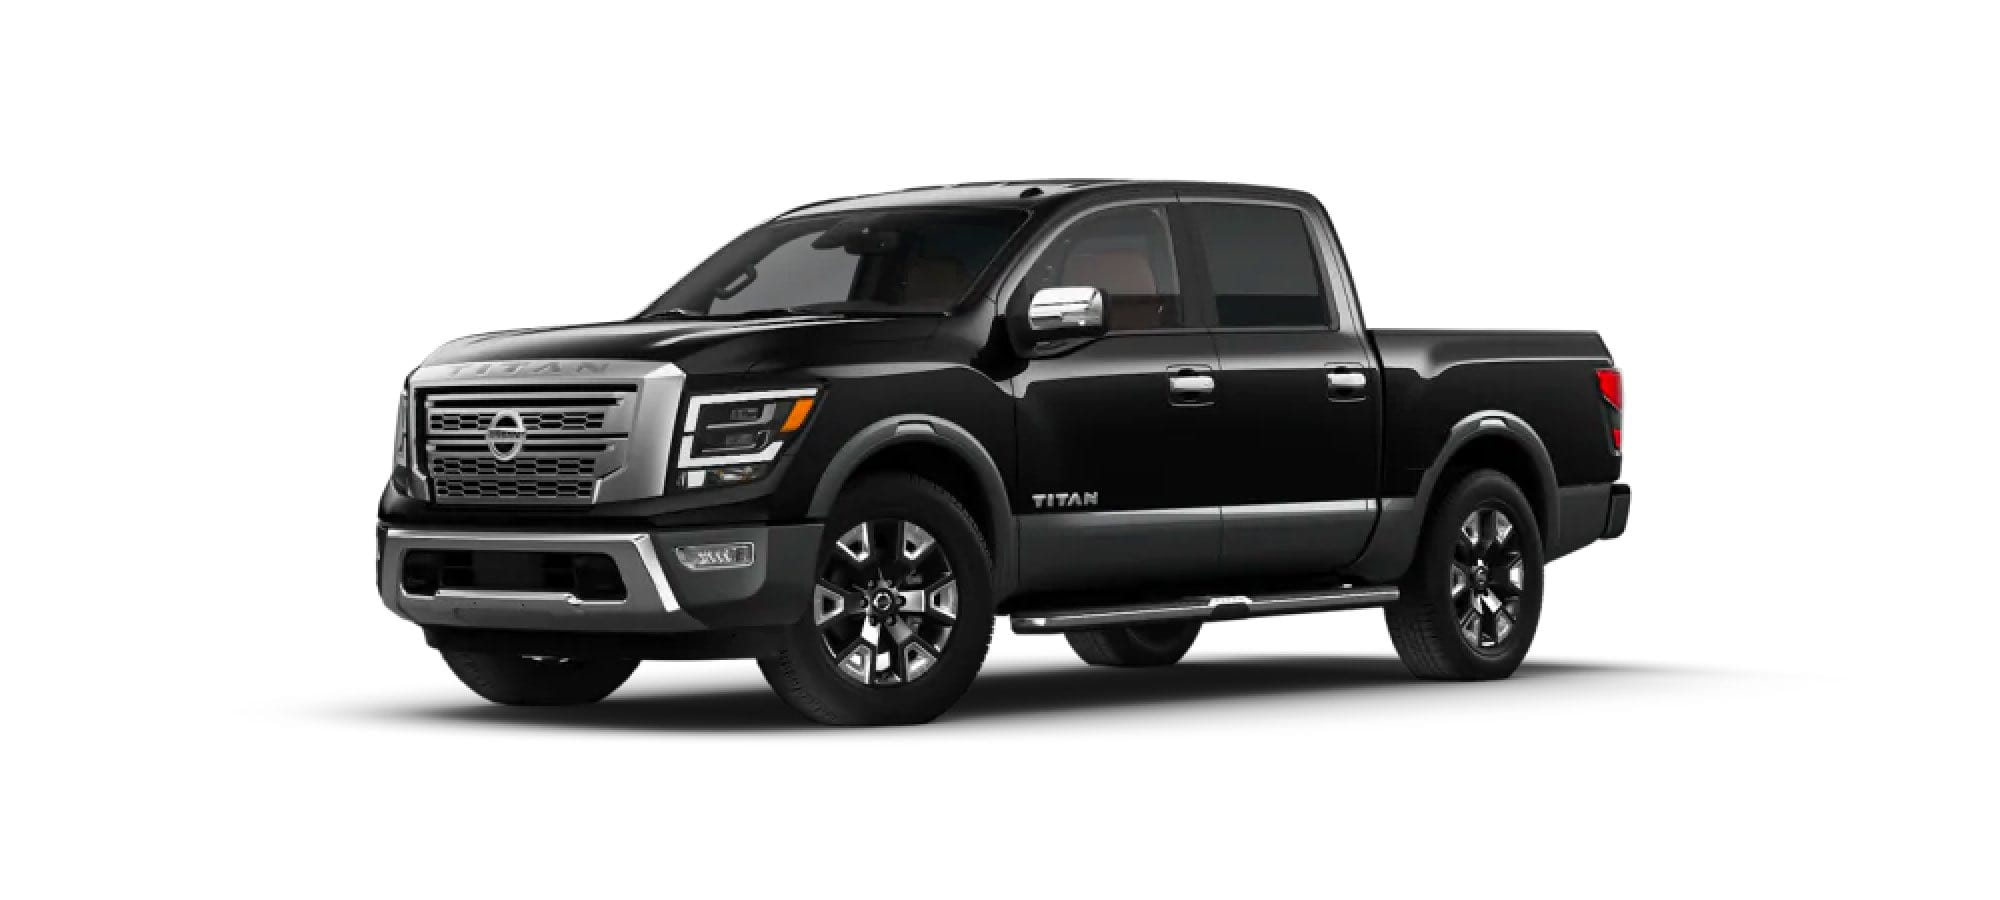 Super Black/Gun Metallic Nissan TITAN